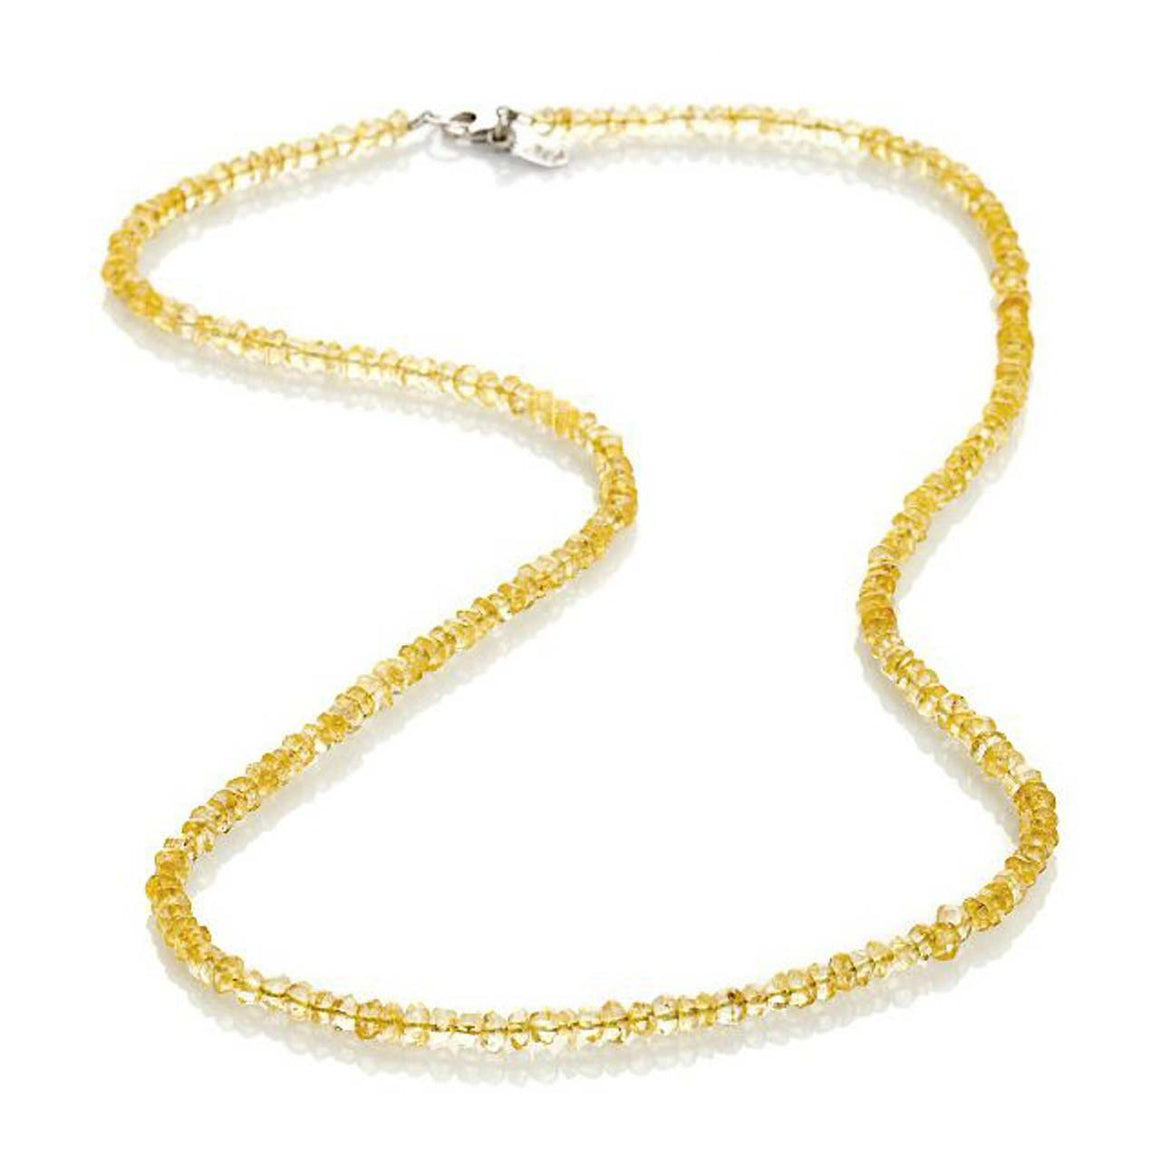 "Citrine 19"" Gemstone Bead Necklace"